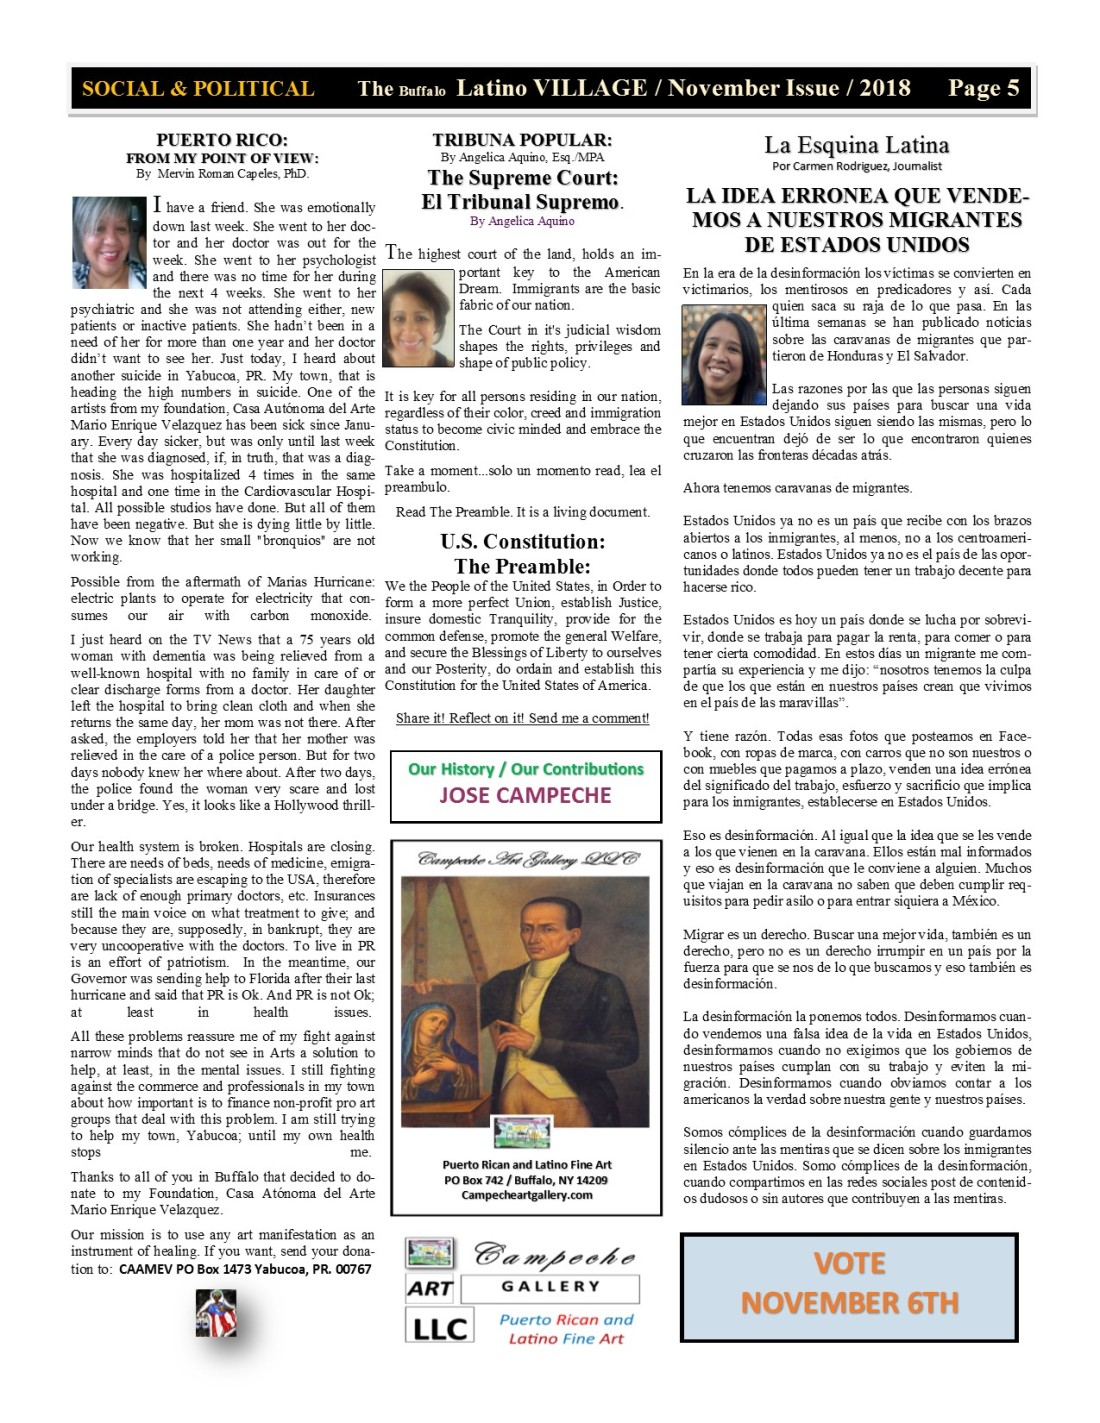 Page 5 Latino Village Newslette November Issue No 13